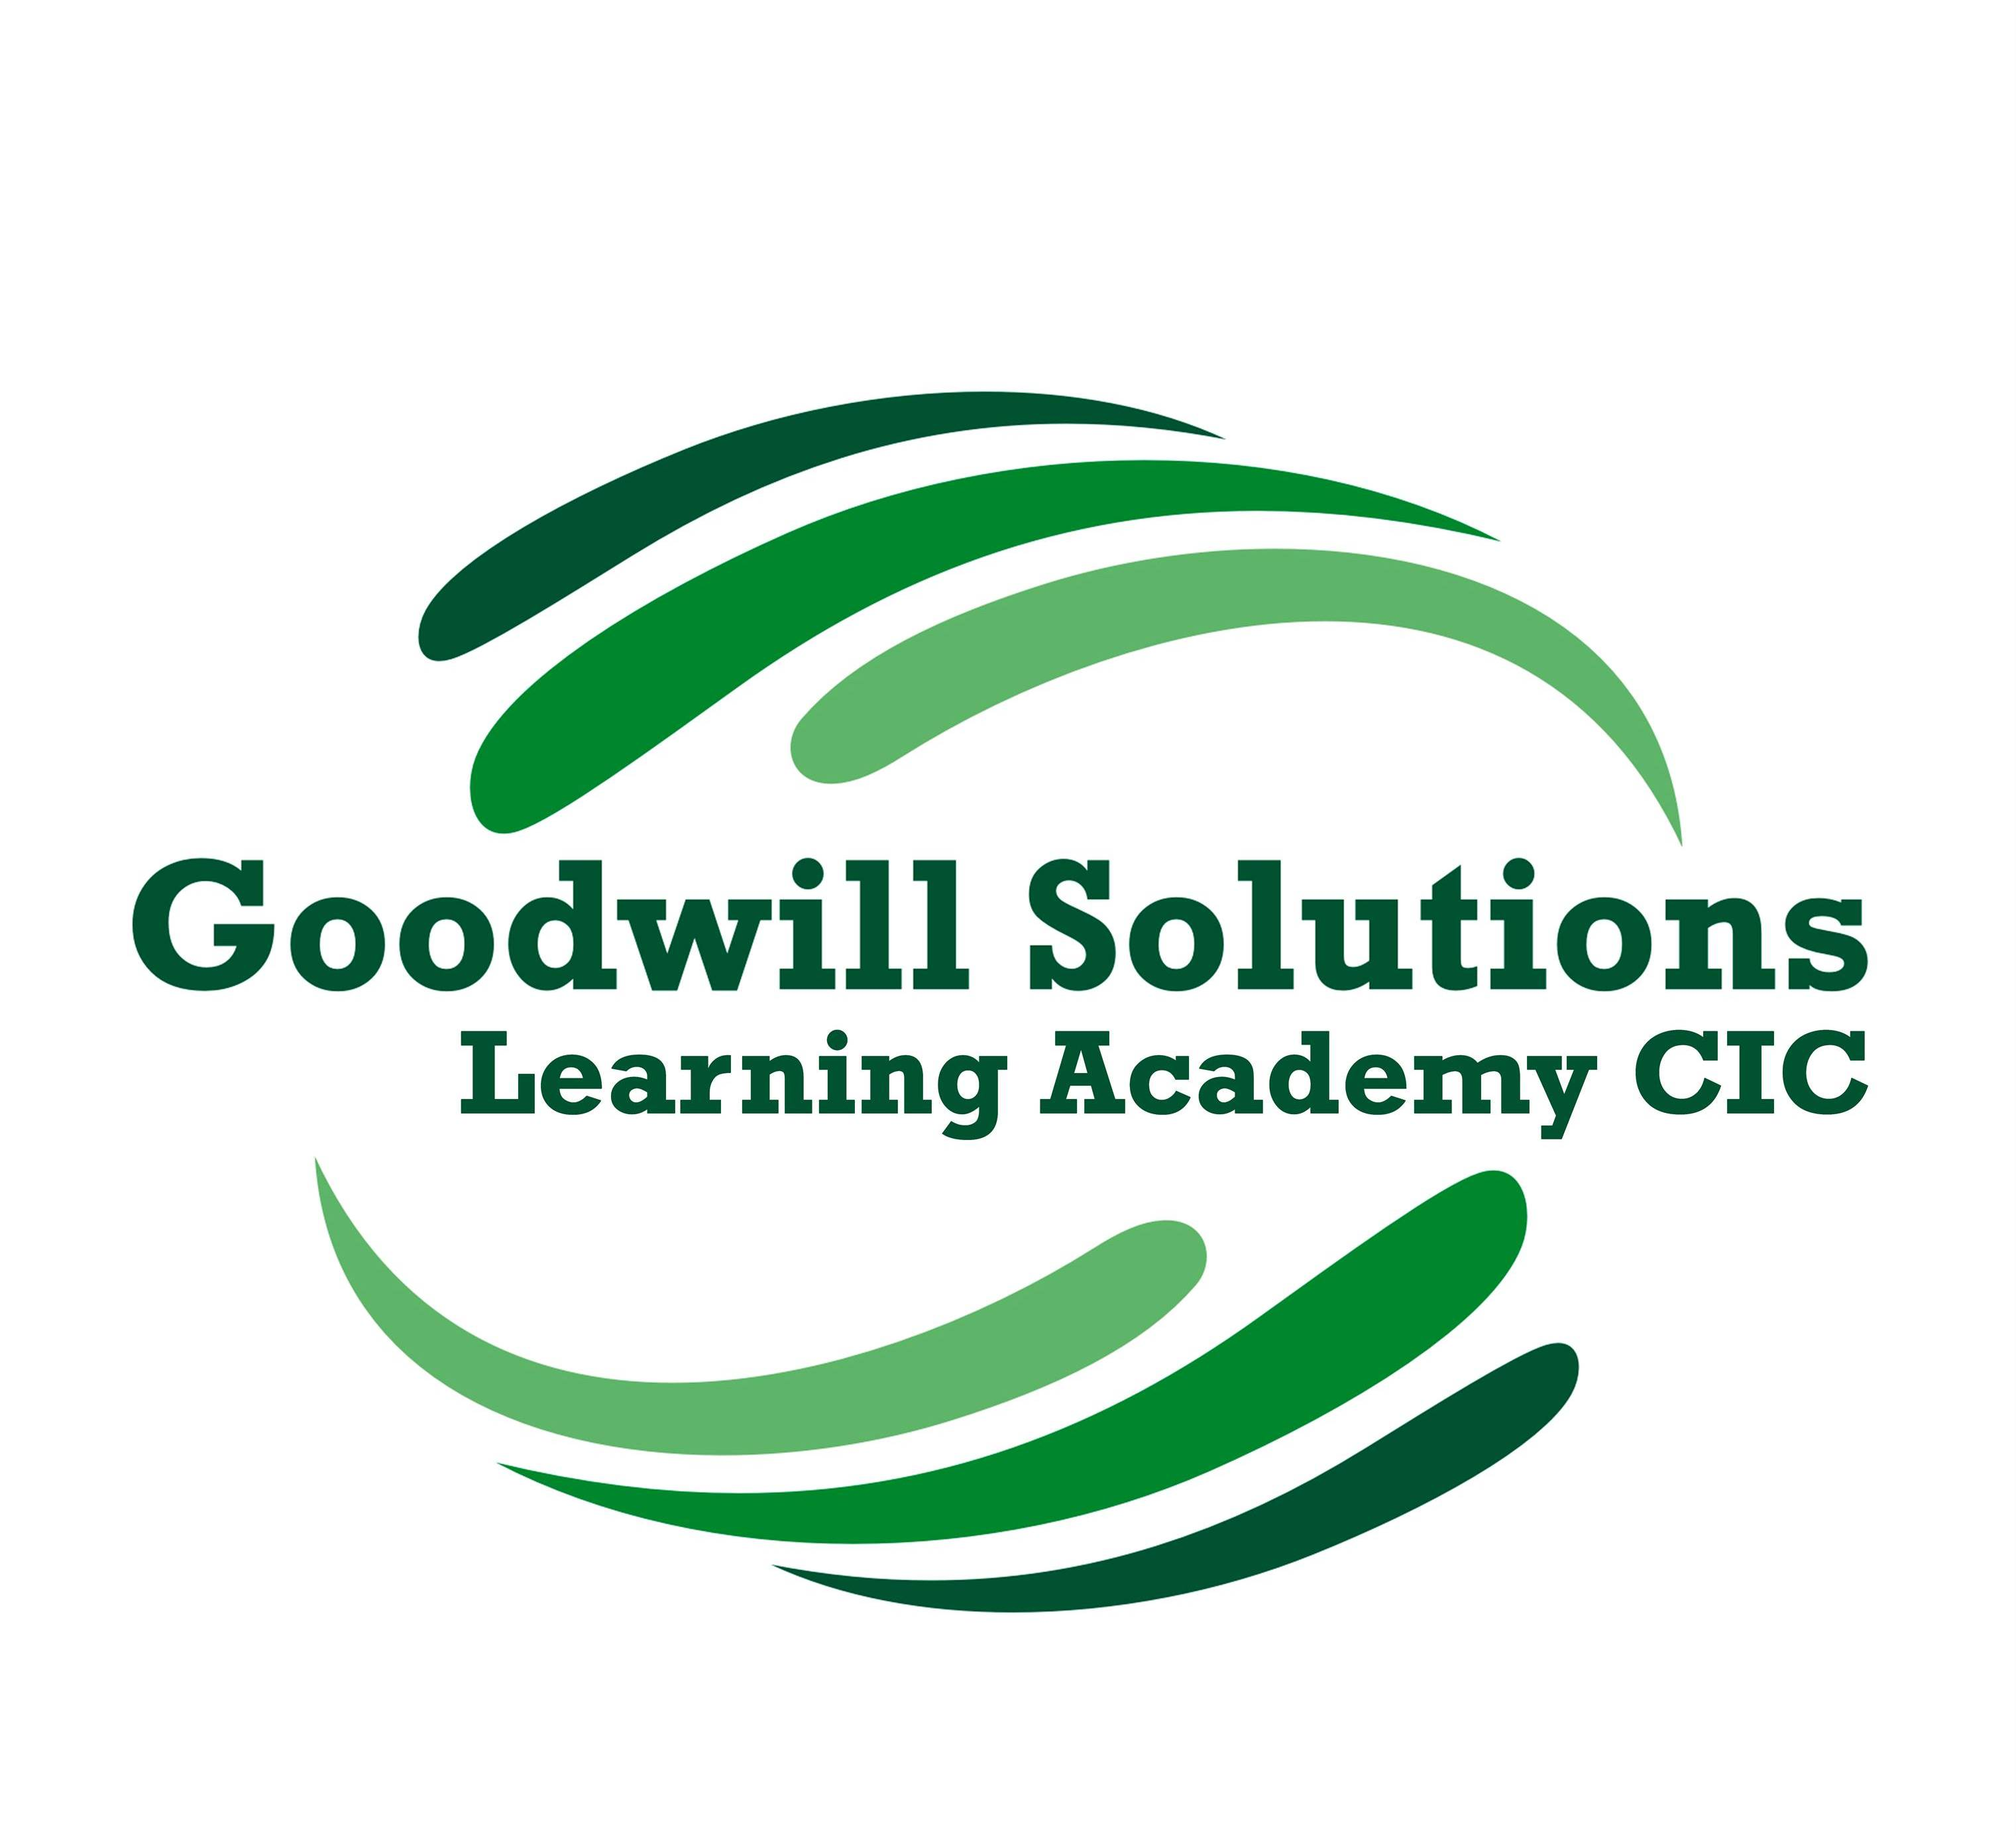 Goodwill Solutions Learning Academy CIC